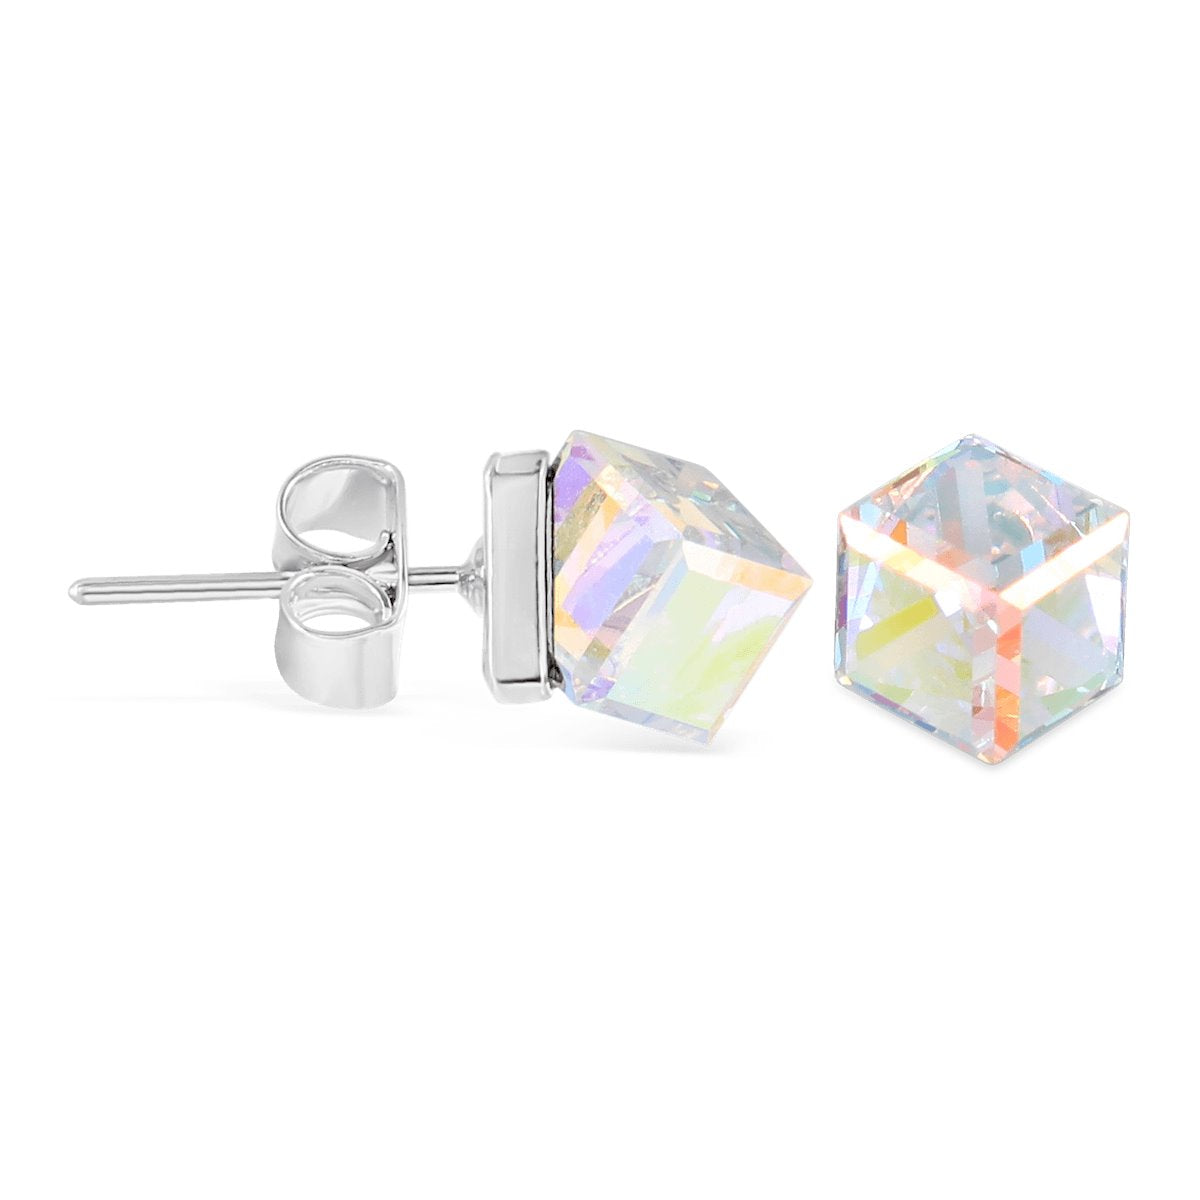 Swarovski Cube Stud Earrings